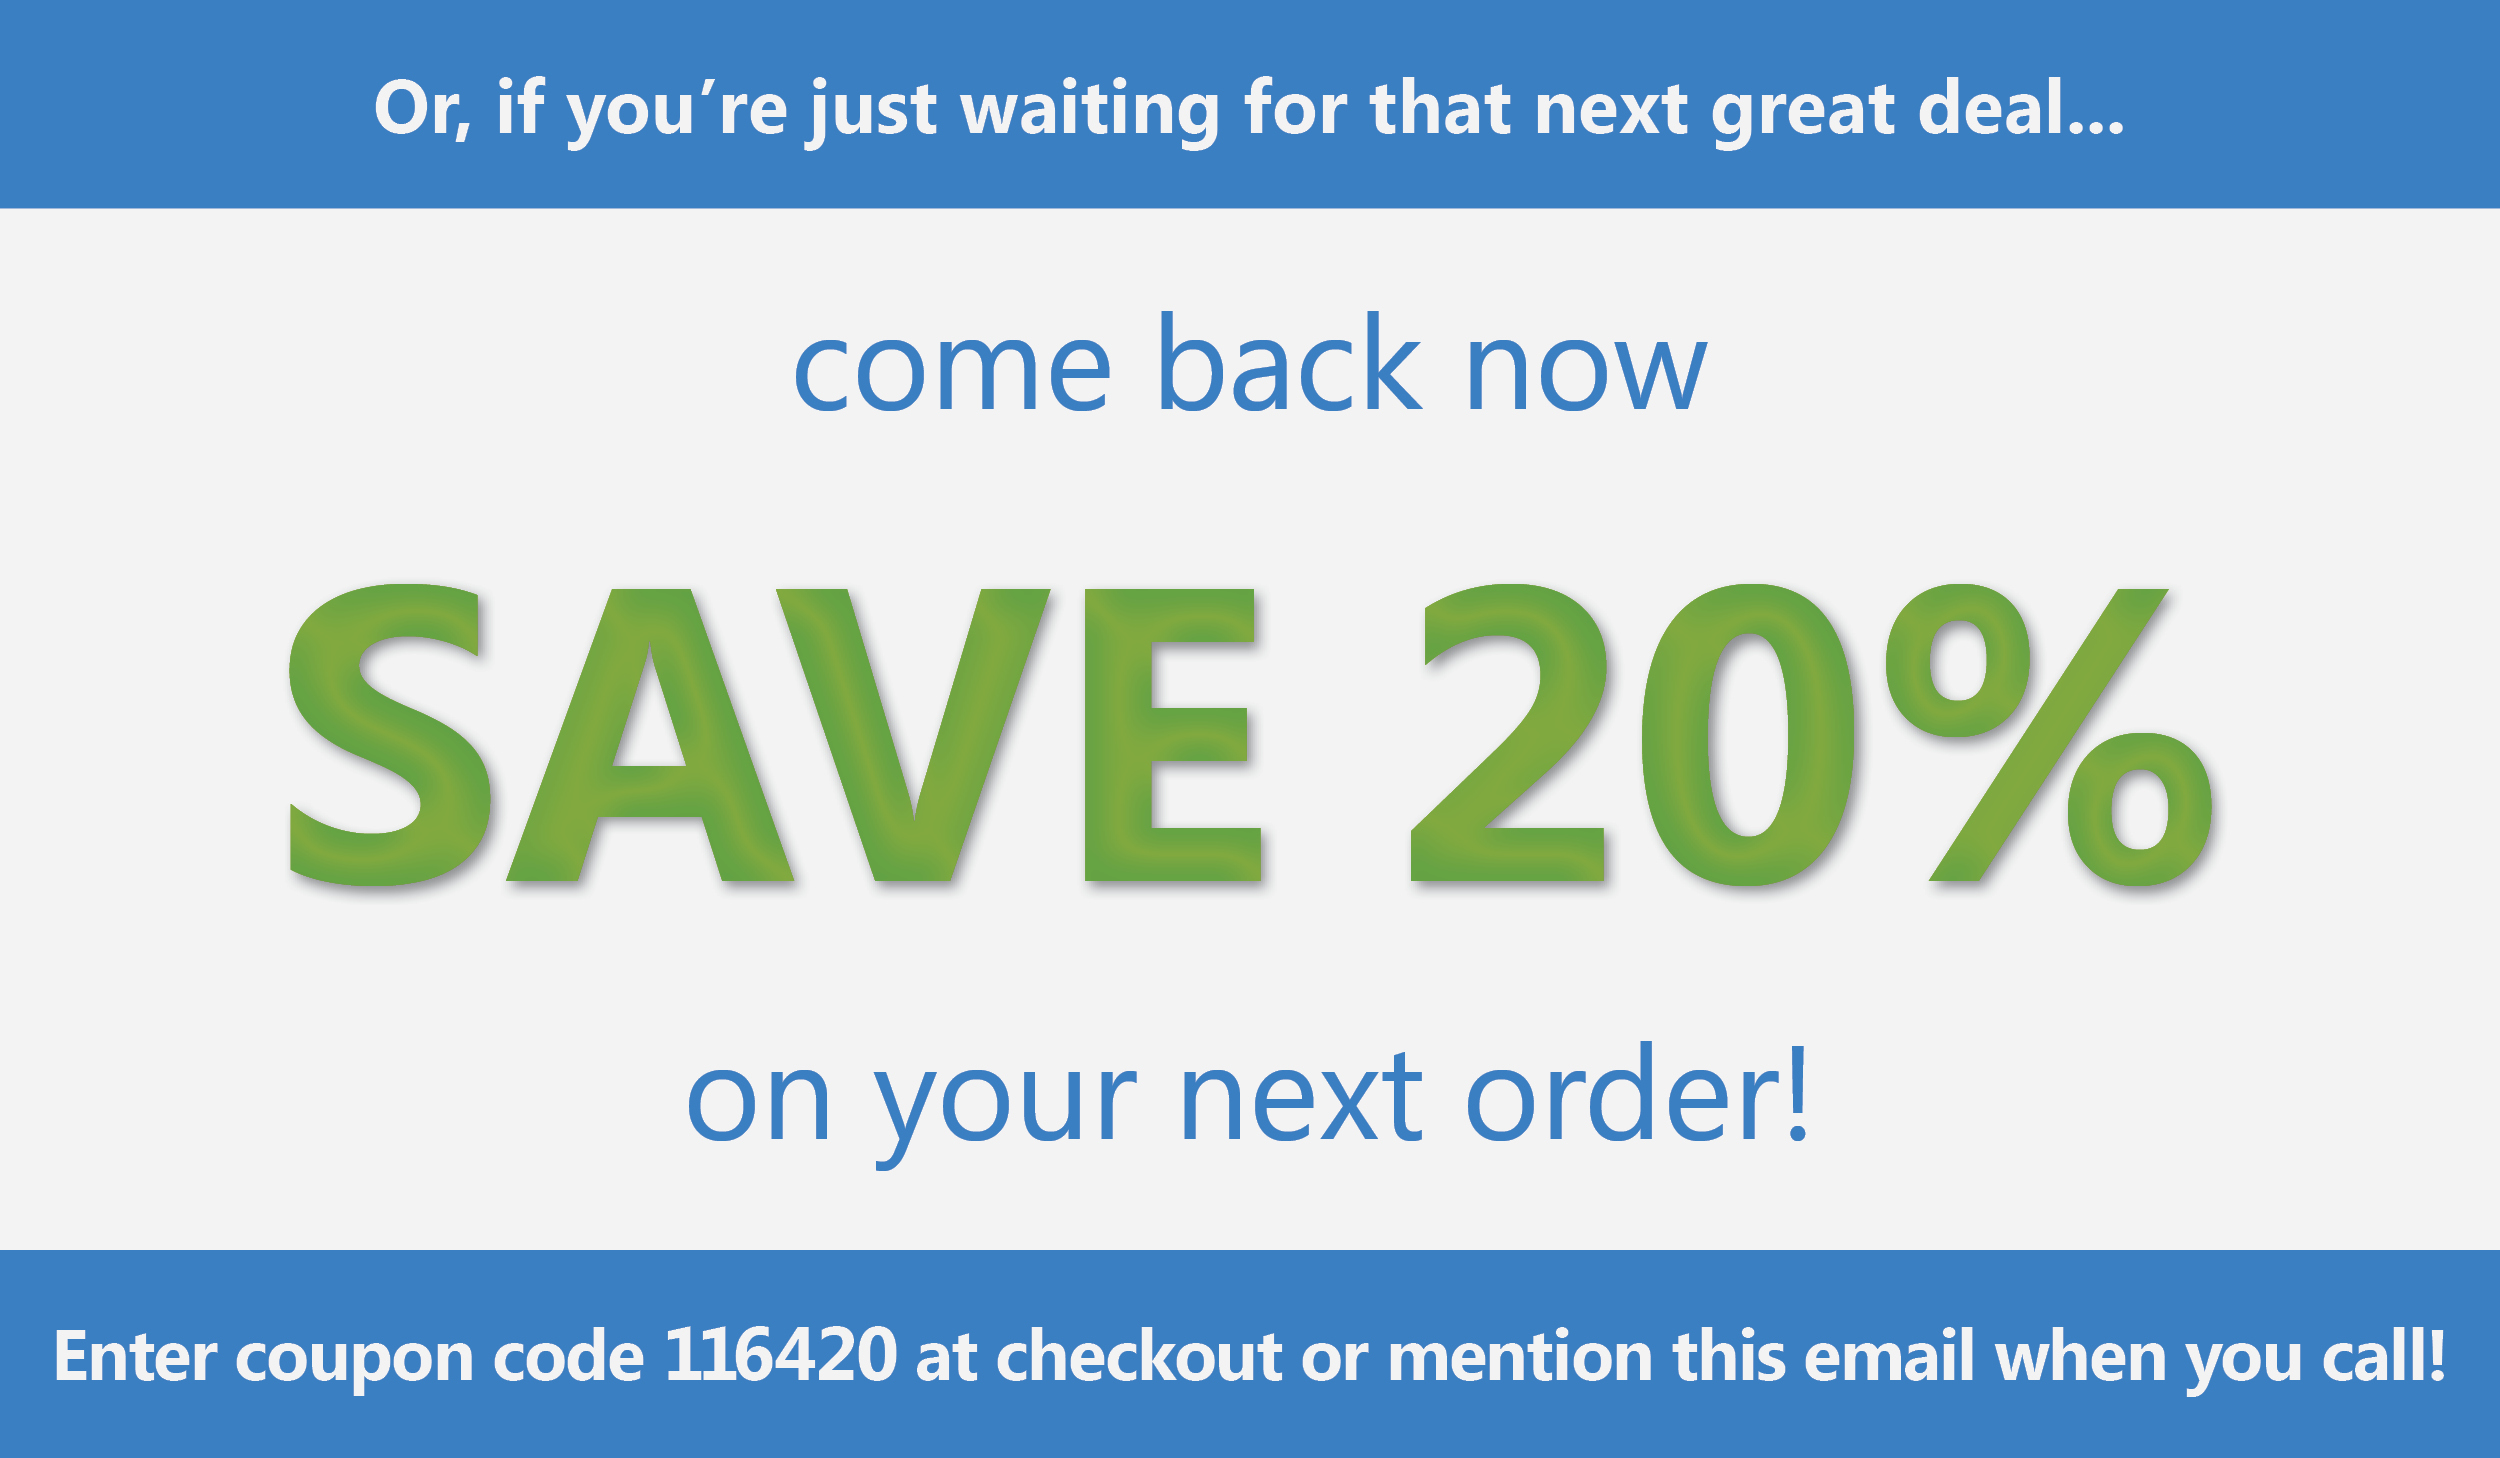 Or if you�re just waiting for that next great deal, come back now and save 20% on your next order with promo code 116420!